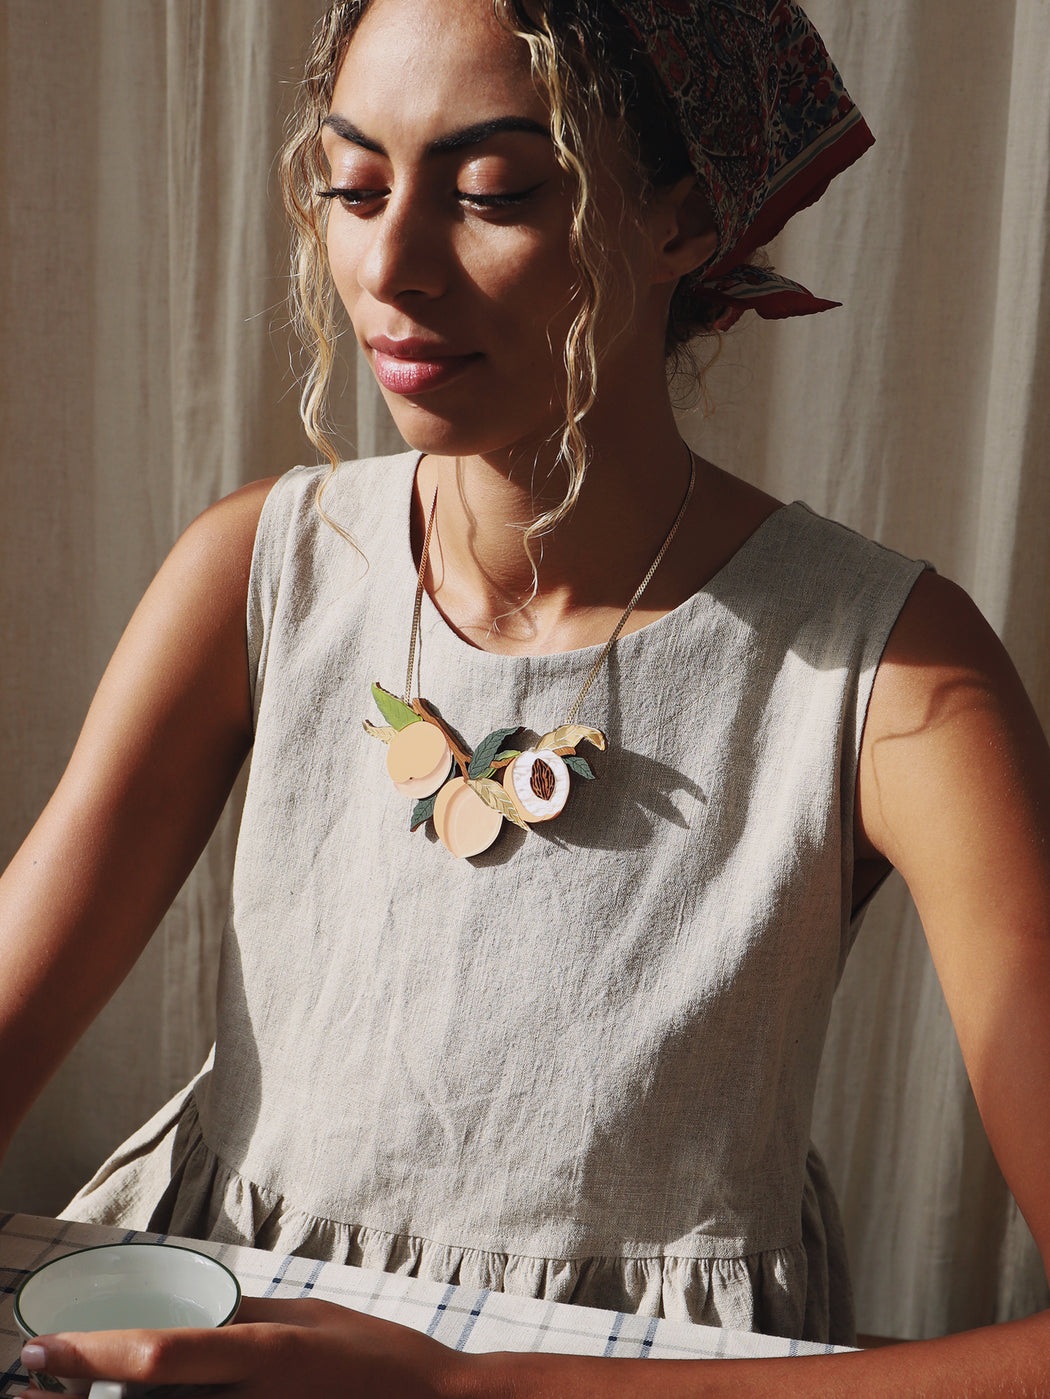 The Garden Collection | Laser-cut acrylic jewellery | Handmade in North London.